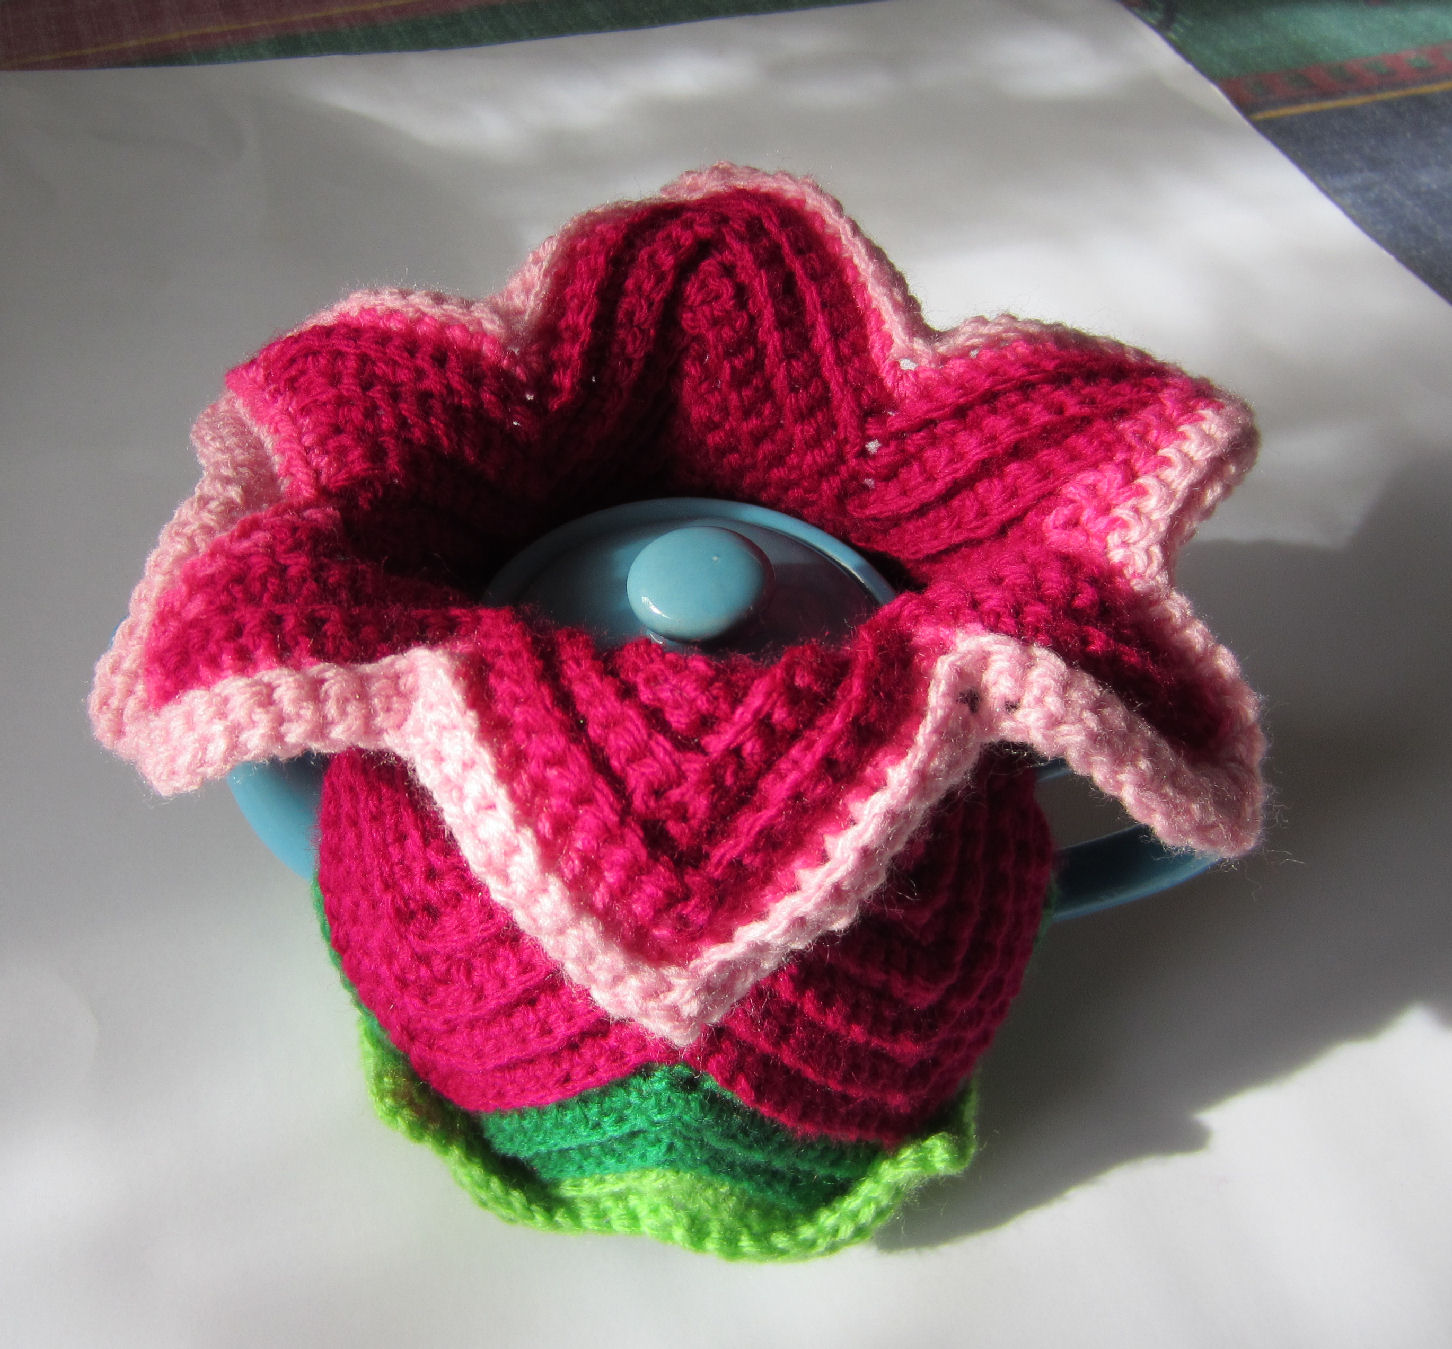 Justjen knits stitches daylily tea cosy for mother 39 s day for Tea cosy template